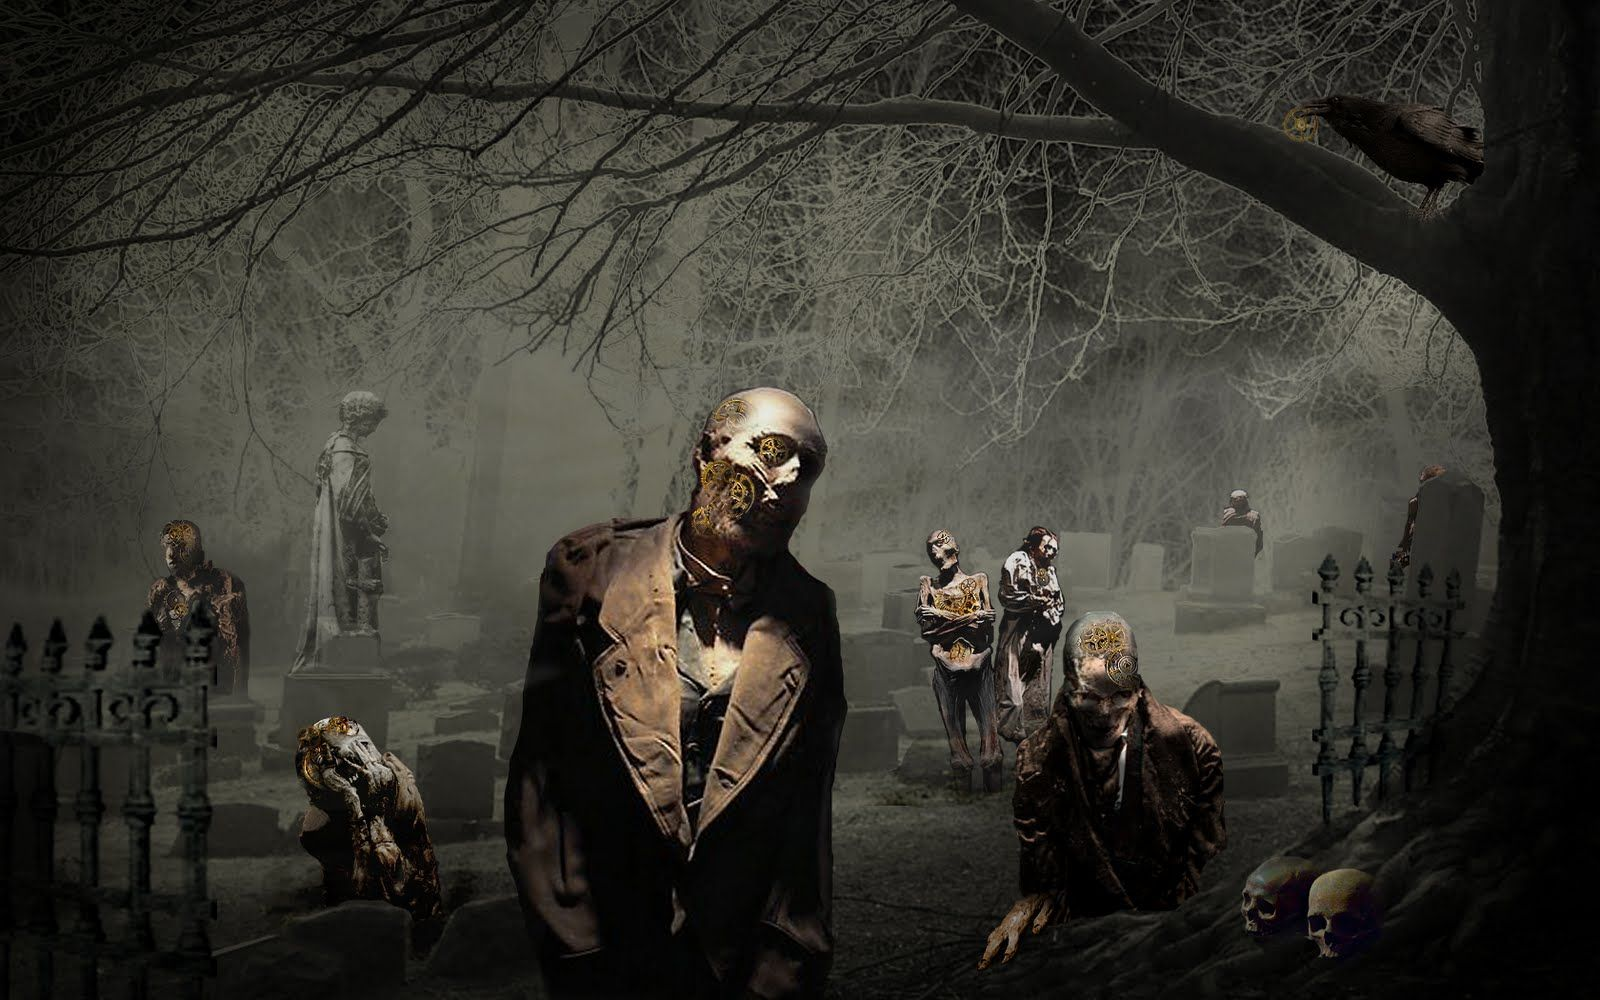 Halloween Pictures Wallpaper Zombie Wallpaper Halloween Desktop Wallpaper Gothic Wallpaper